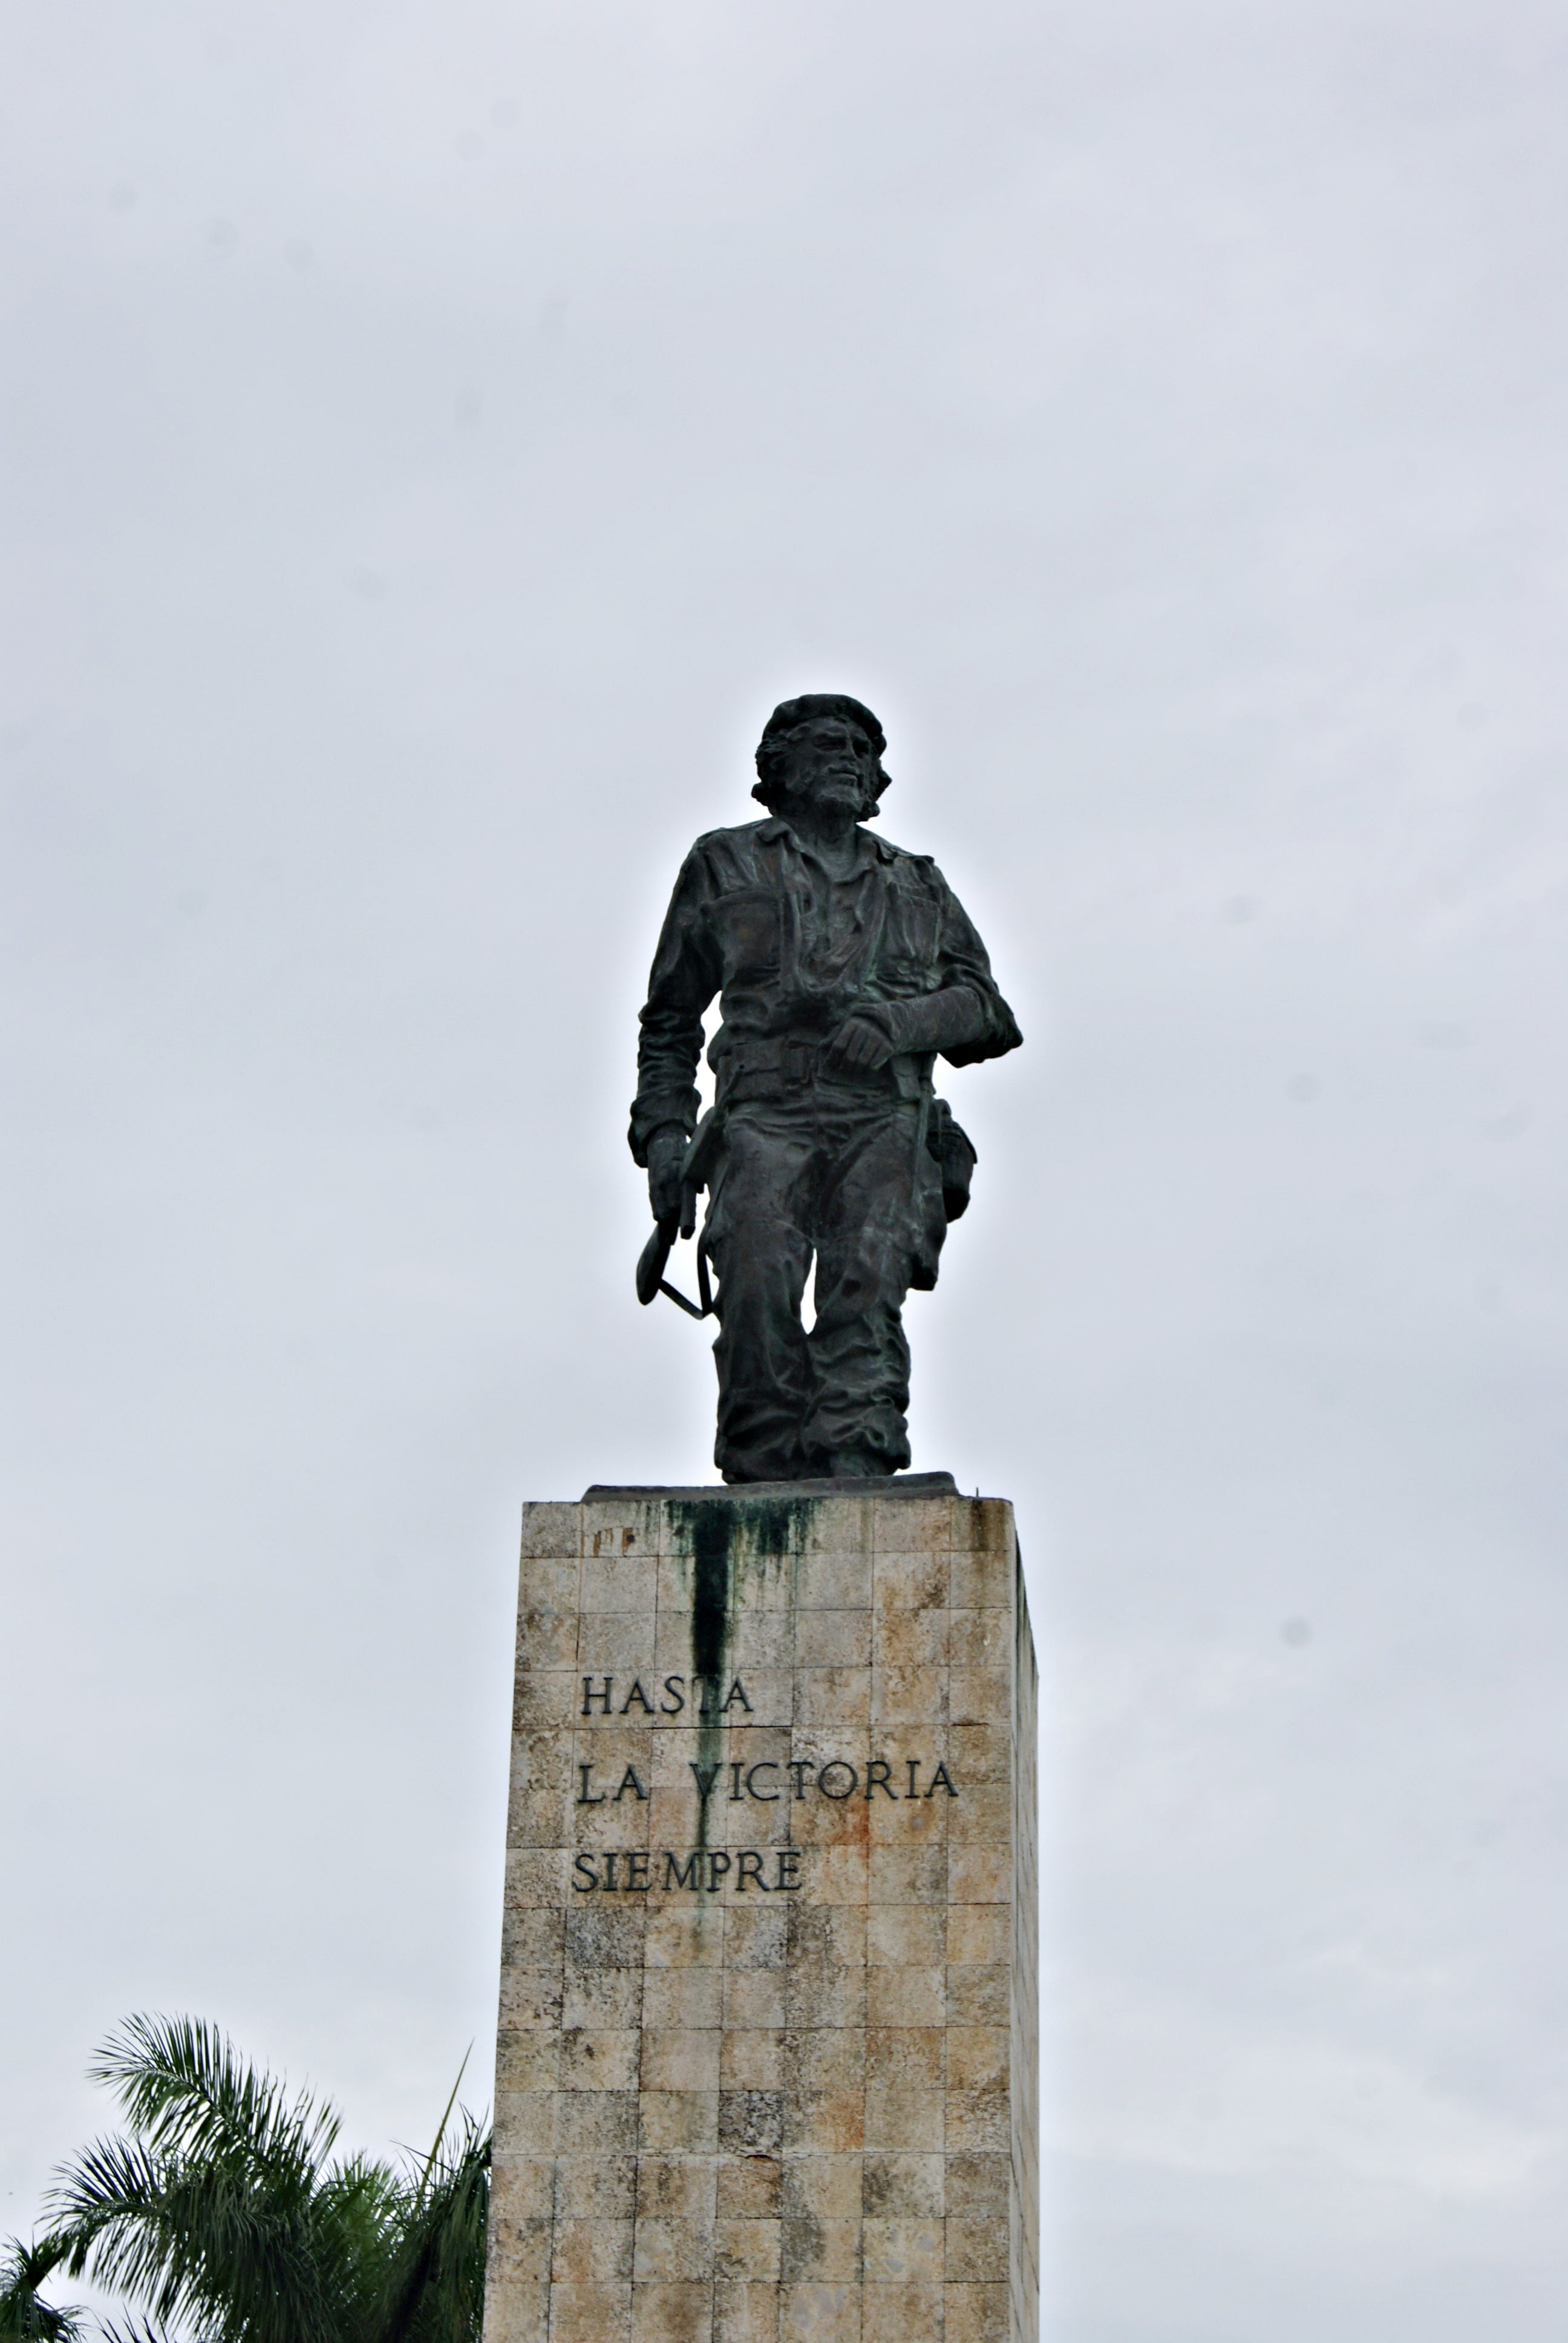 Ernesto Che Guevara, the Remind of A Village